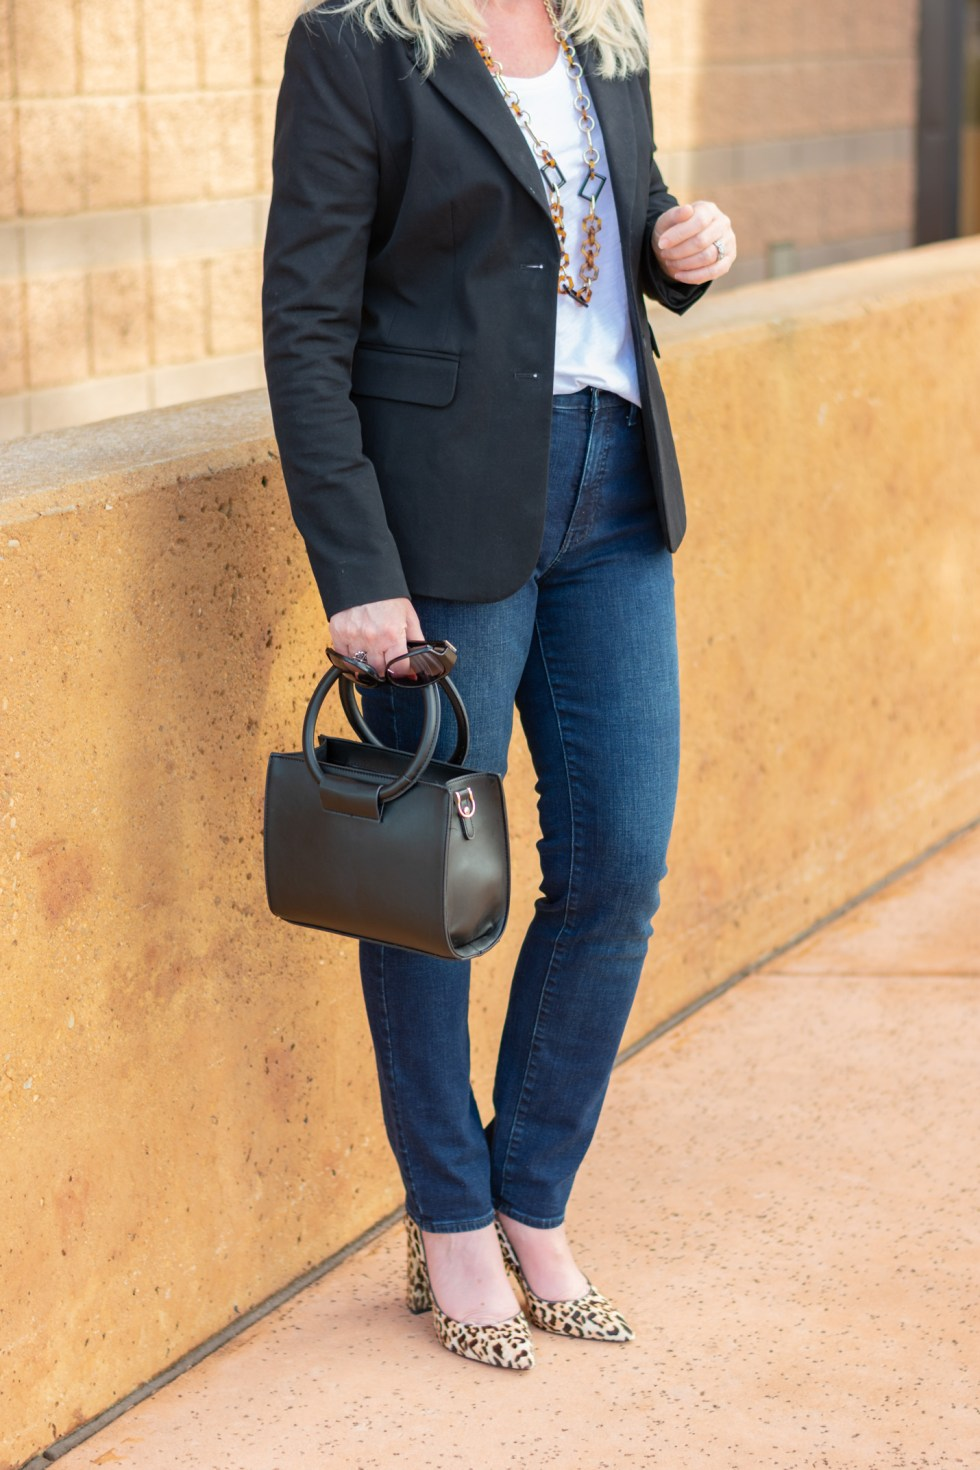 How to Style a Basic Black Blazer with a T-Shirt and Jeans